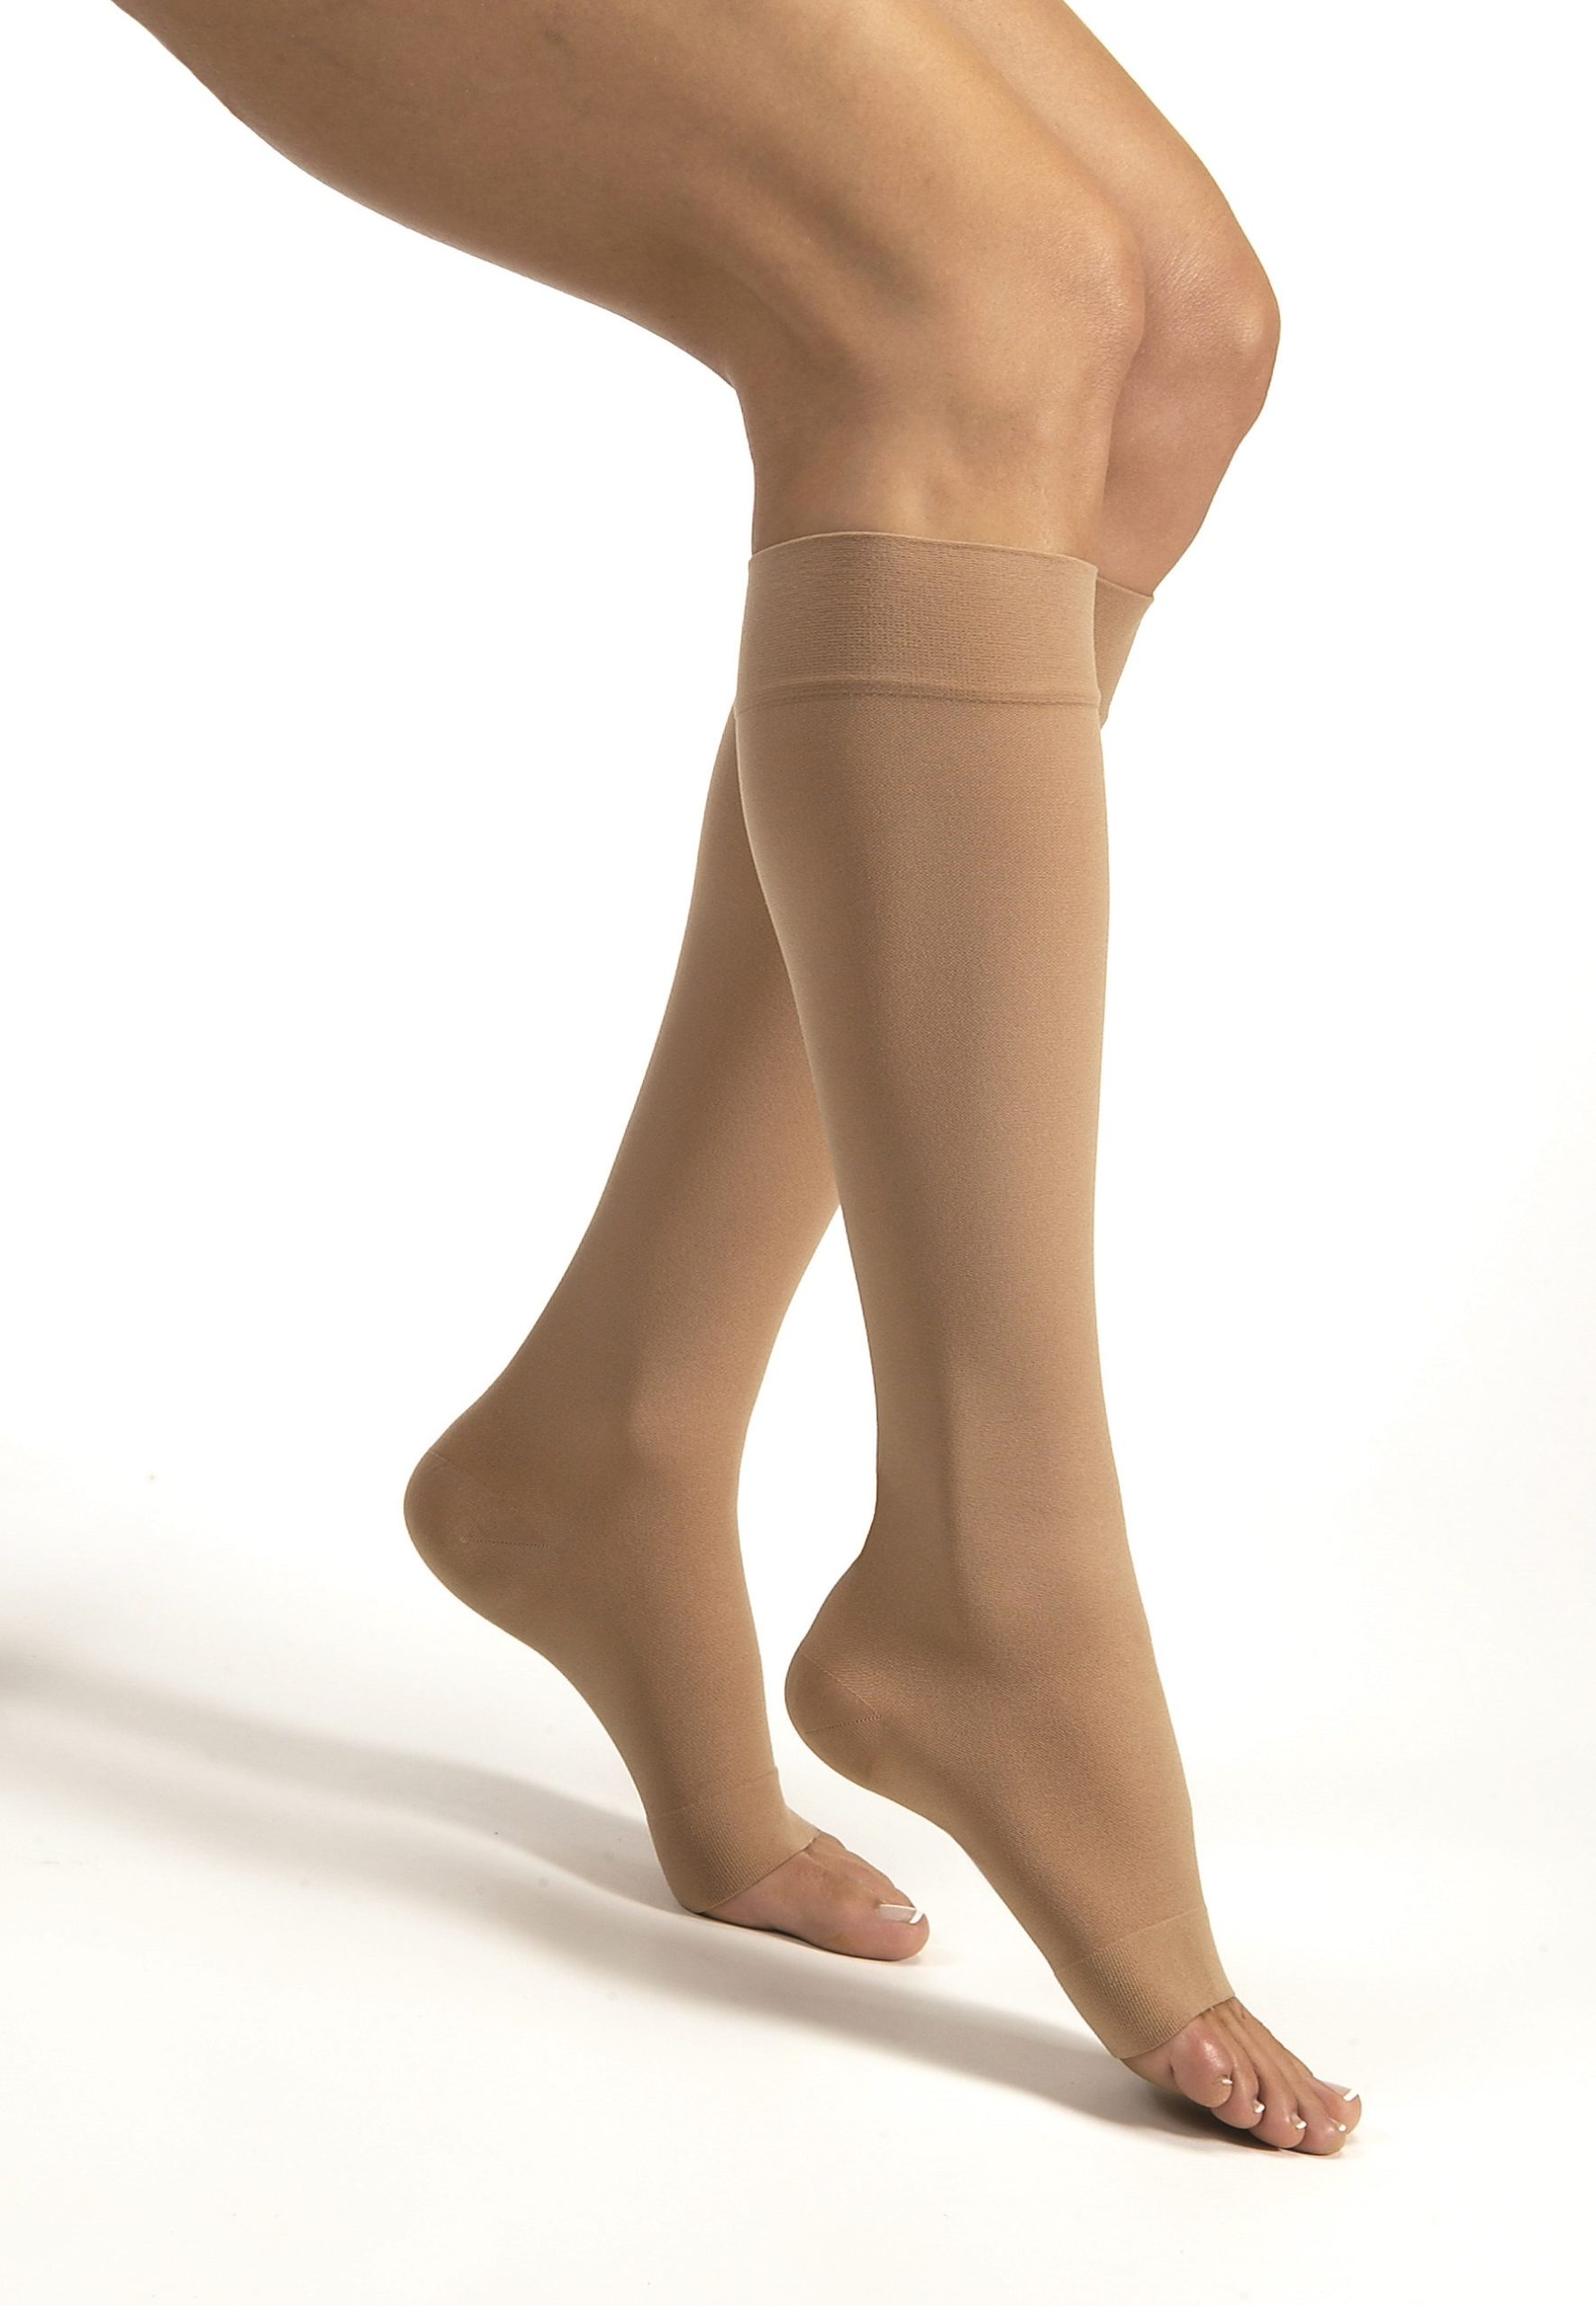 JOBST® Relief Knee 30-40 Open Toe Beige XLfc